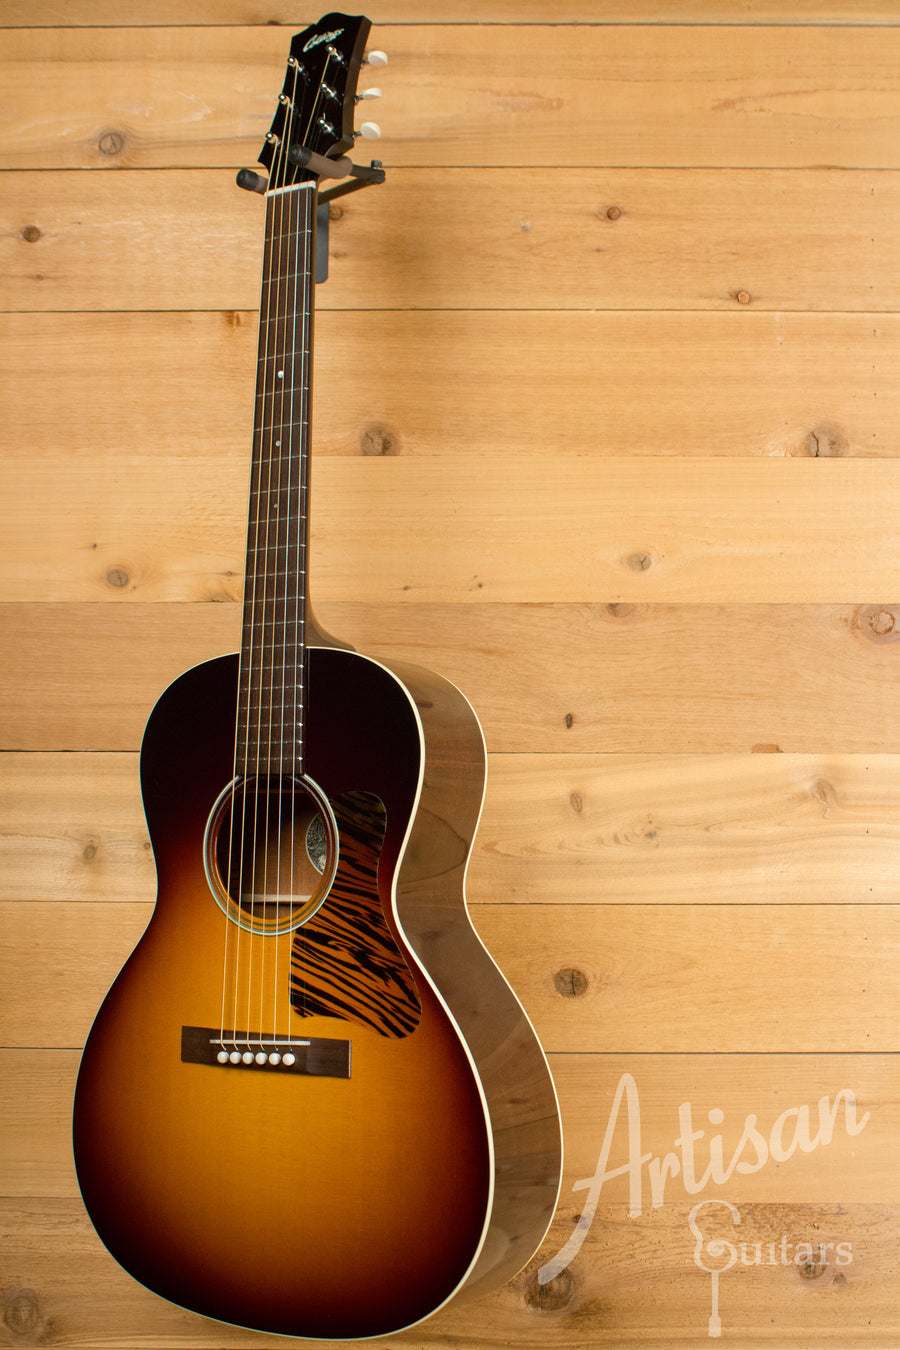 Collings C10-35 Sitka and Mahogany with Sunburst Pre-Owned 2016 ID-11116 - Artisan Guitars